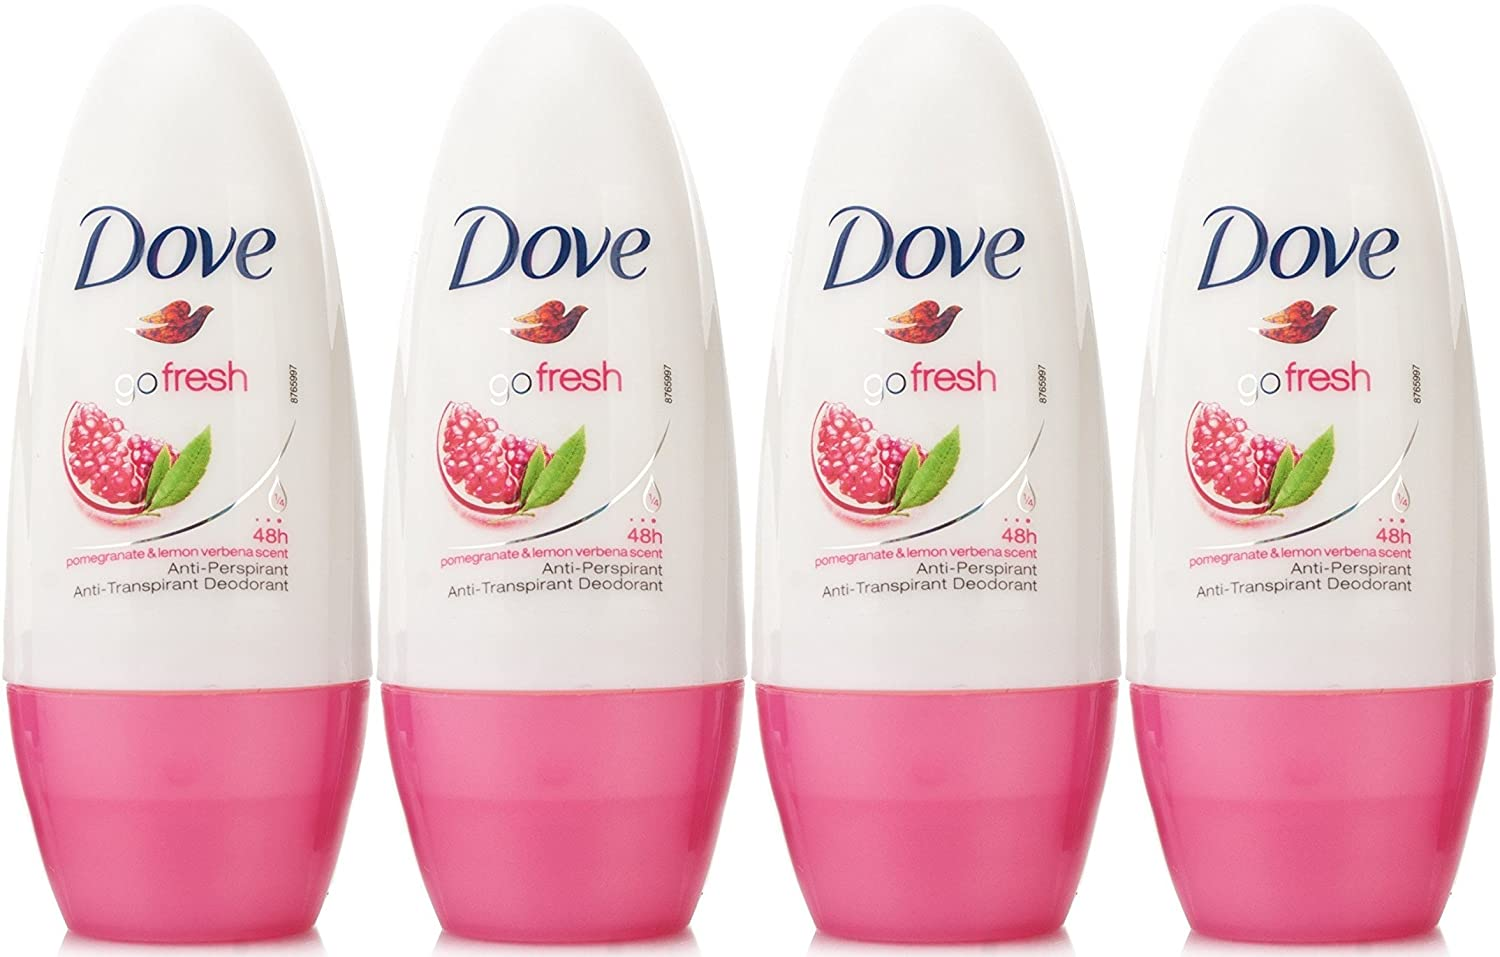 Dove Antiperspirant Deodorant Roll-On, Go Fresh Pomegranate & Lemon Verbena, 1.7 Oz / 50 Ml (Pack of 4)